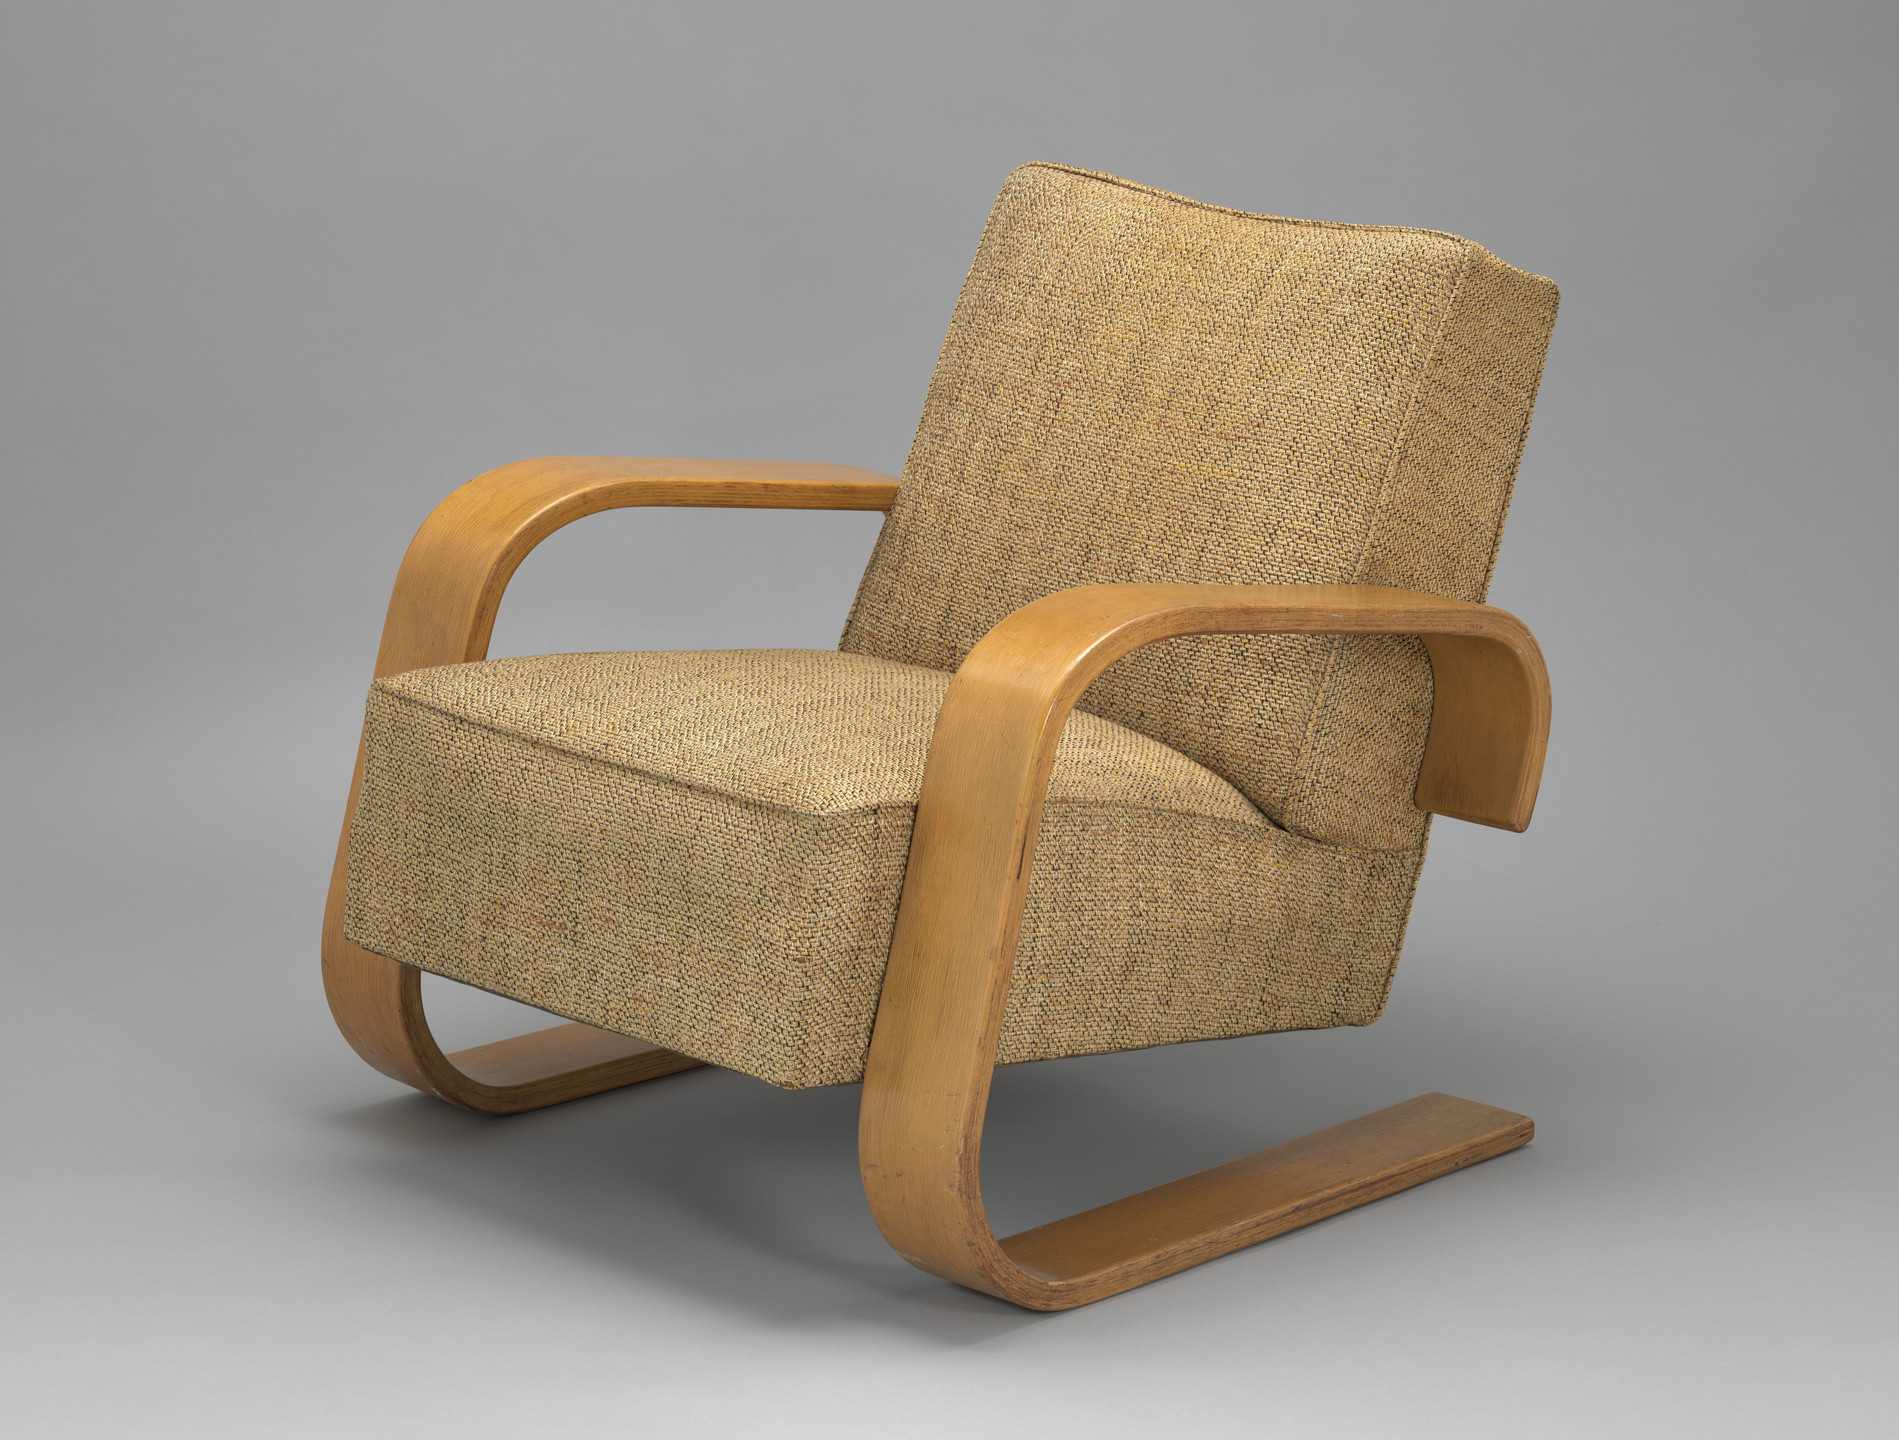 Alvar Aalto. Armchair (model 400) (Cantilevered armchair). 1936